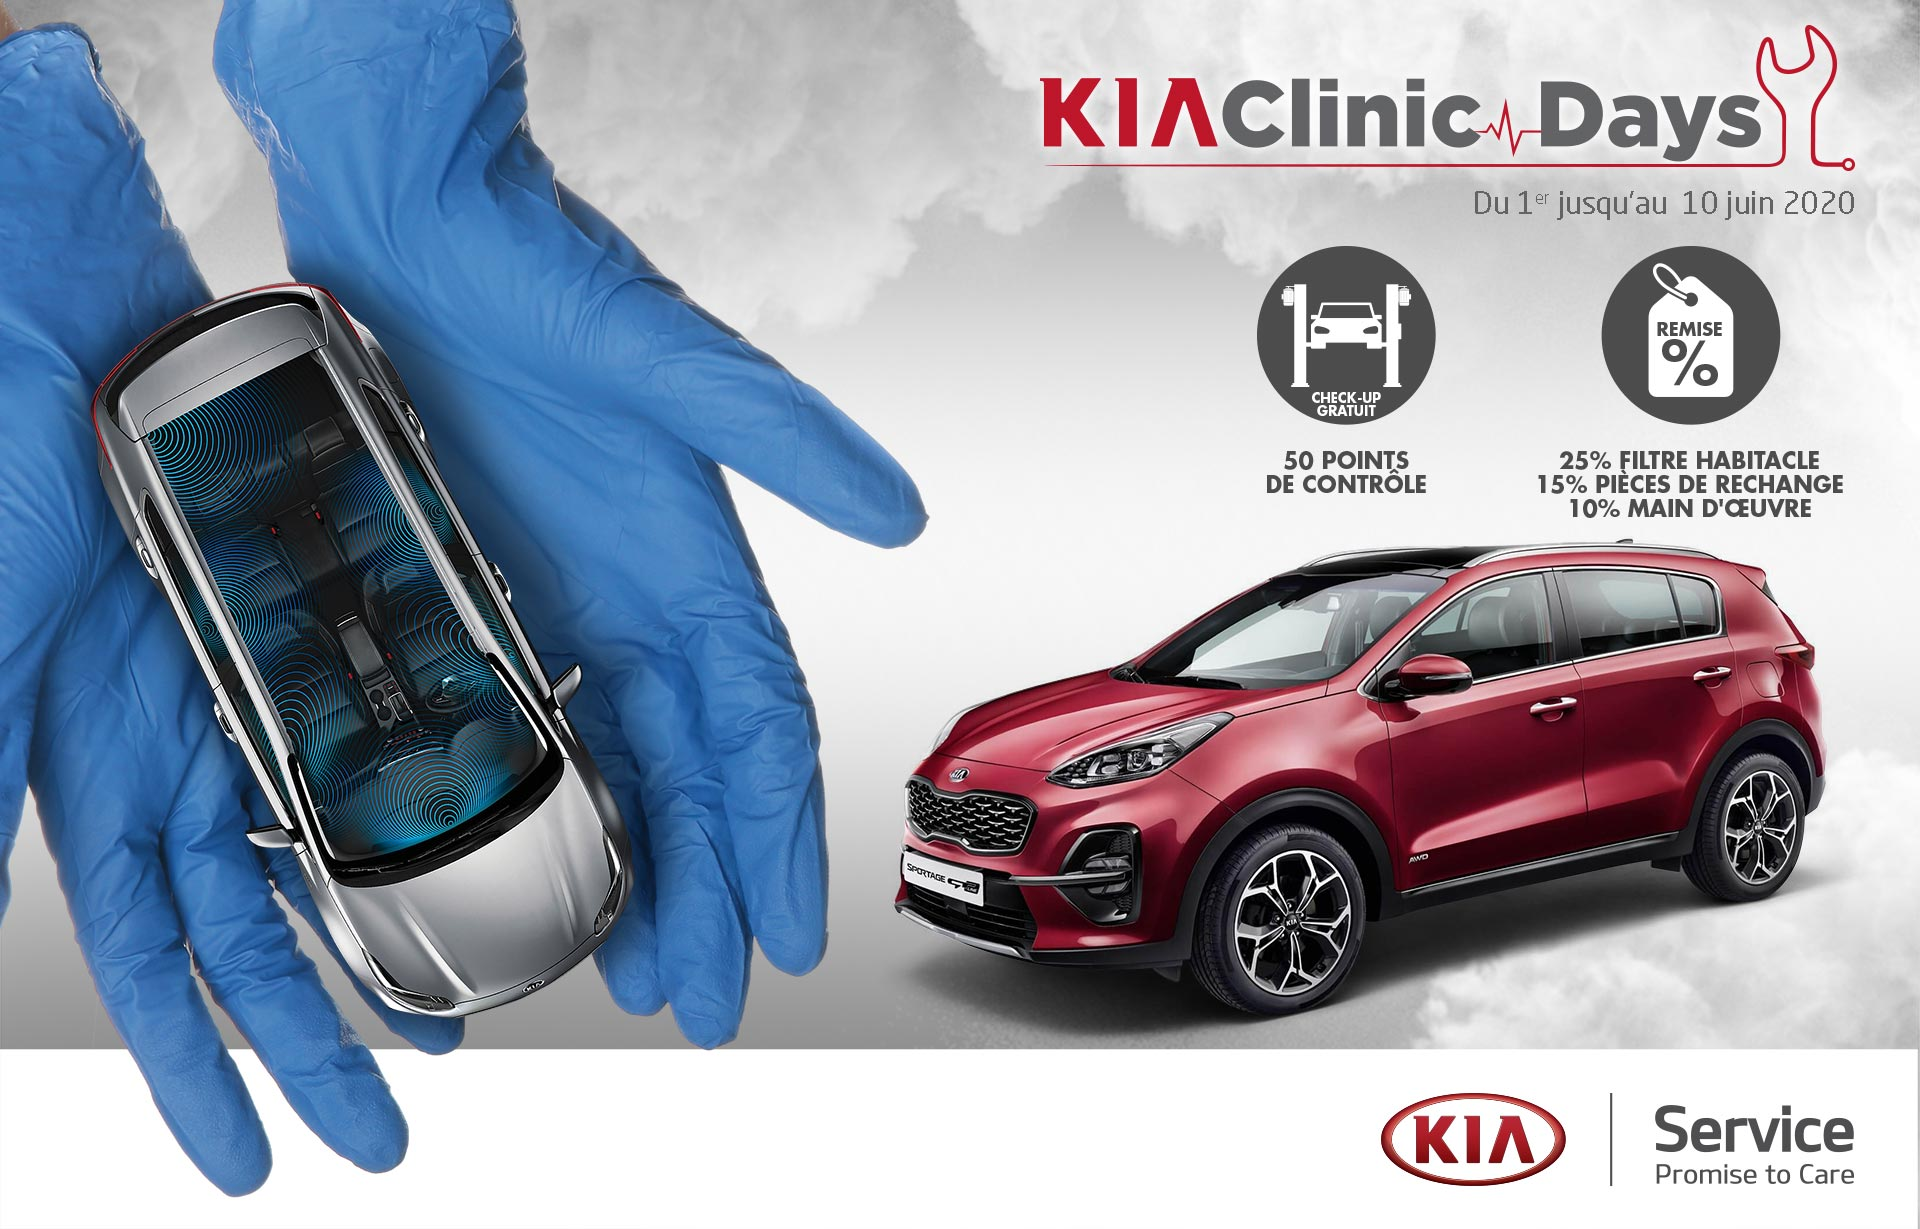 KIA Clinic Days